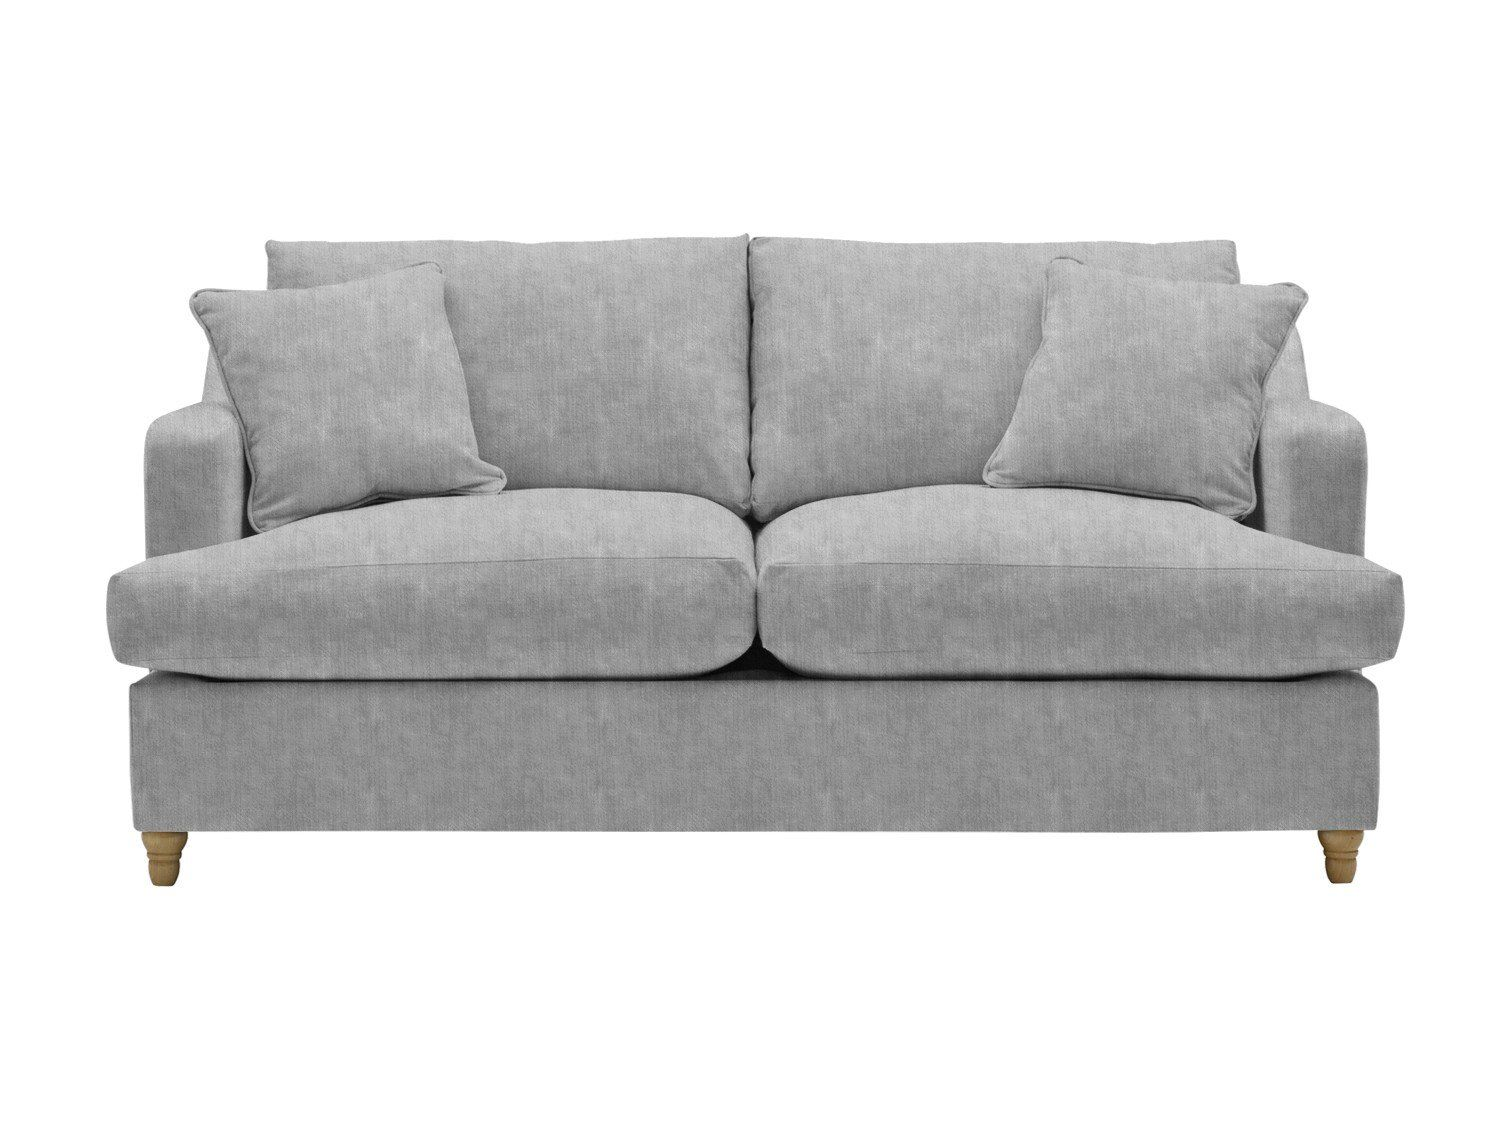 The Atworth 2 Seater Sofa Bed | Willow U0026 Hall